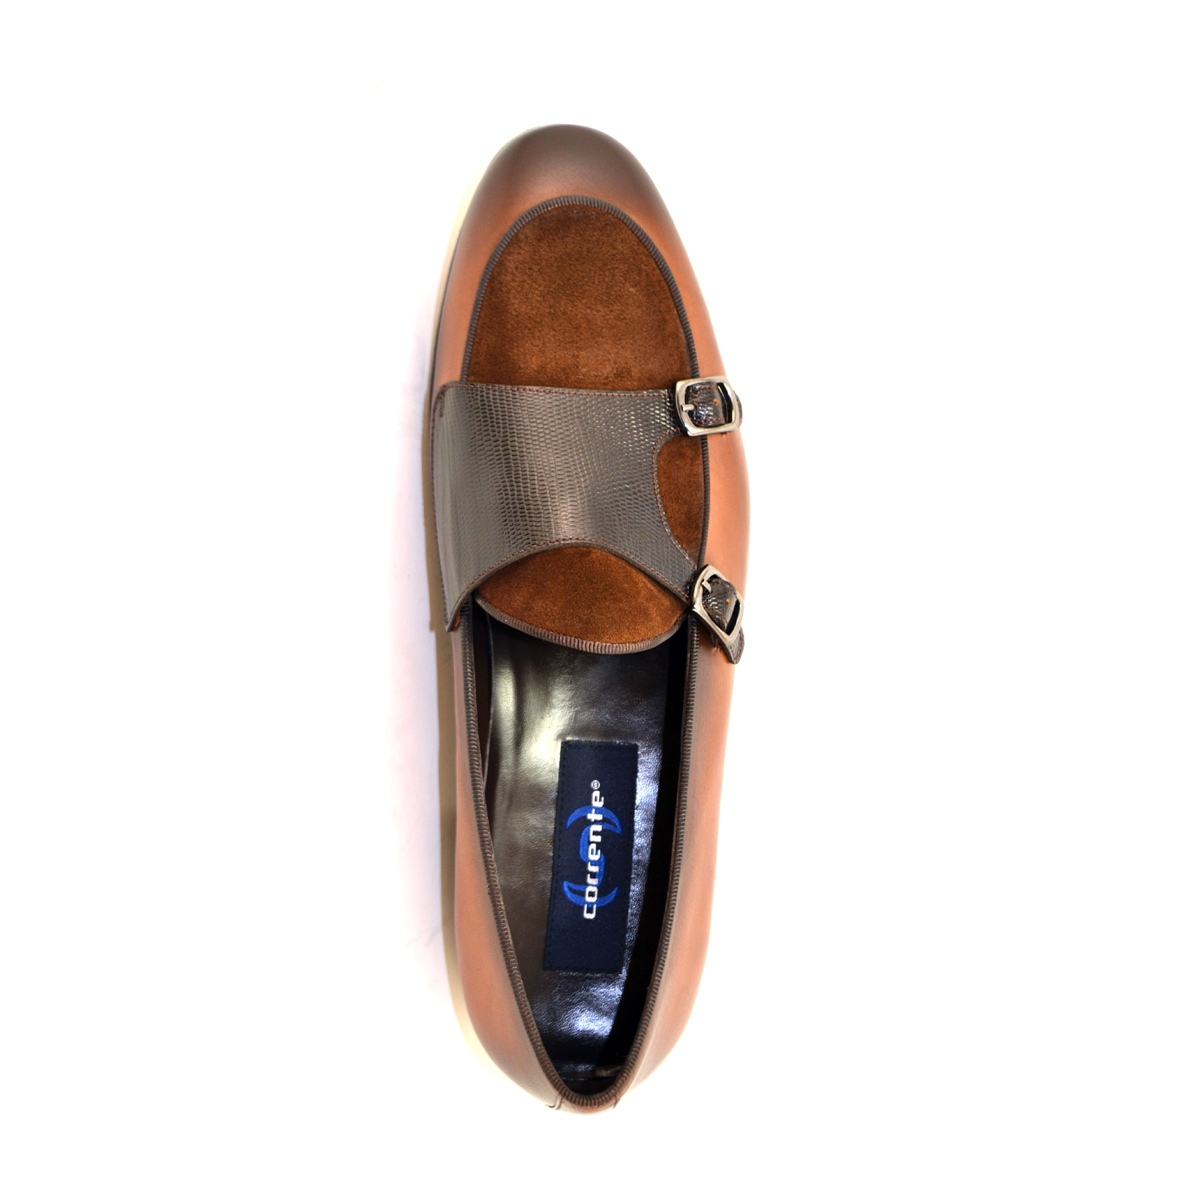 Corrente 4661-Double Monk strap Loafer, Lizard and suede vamp, Brown